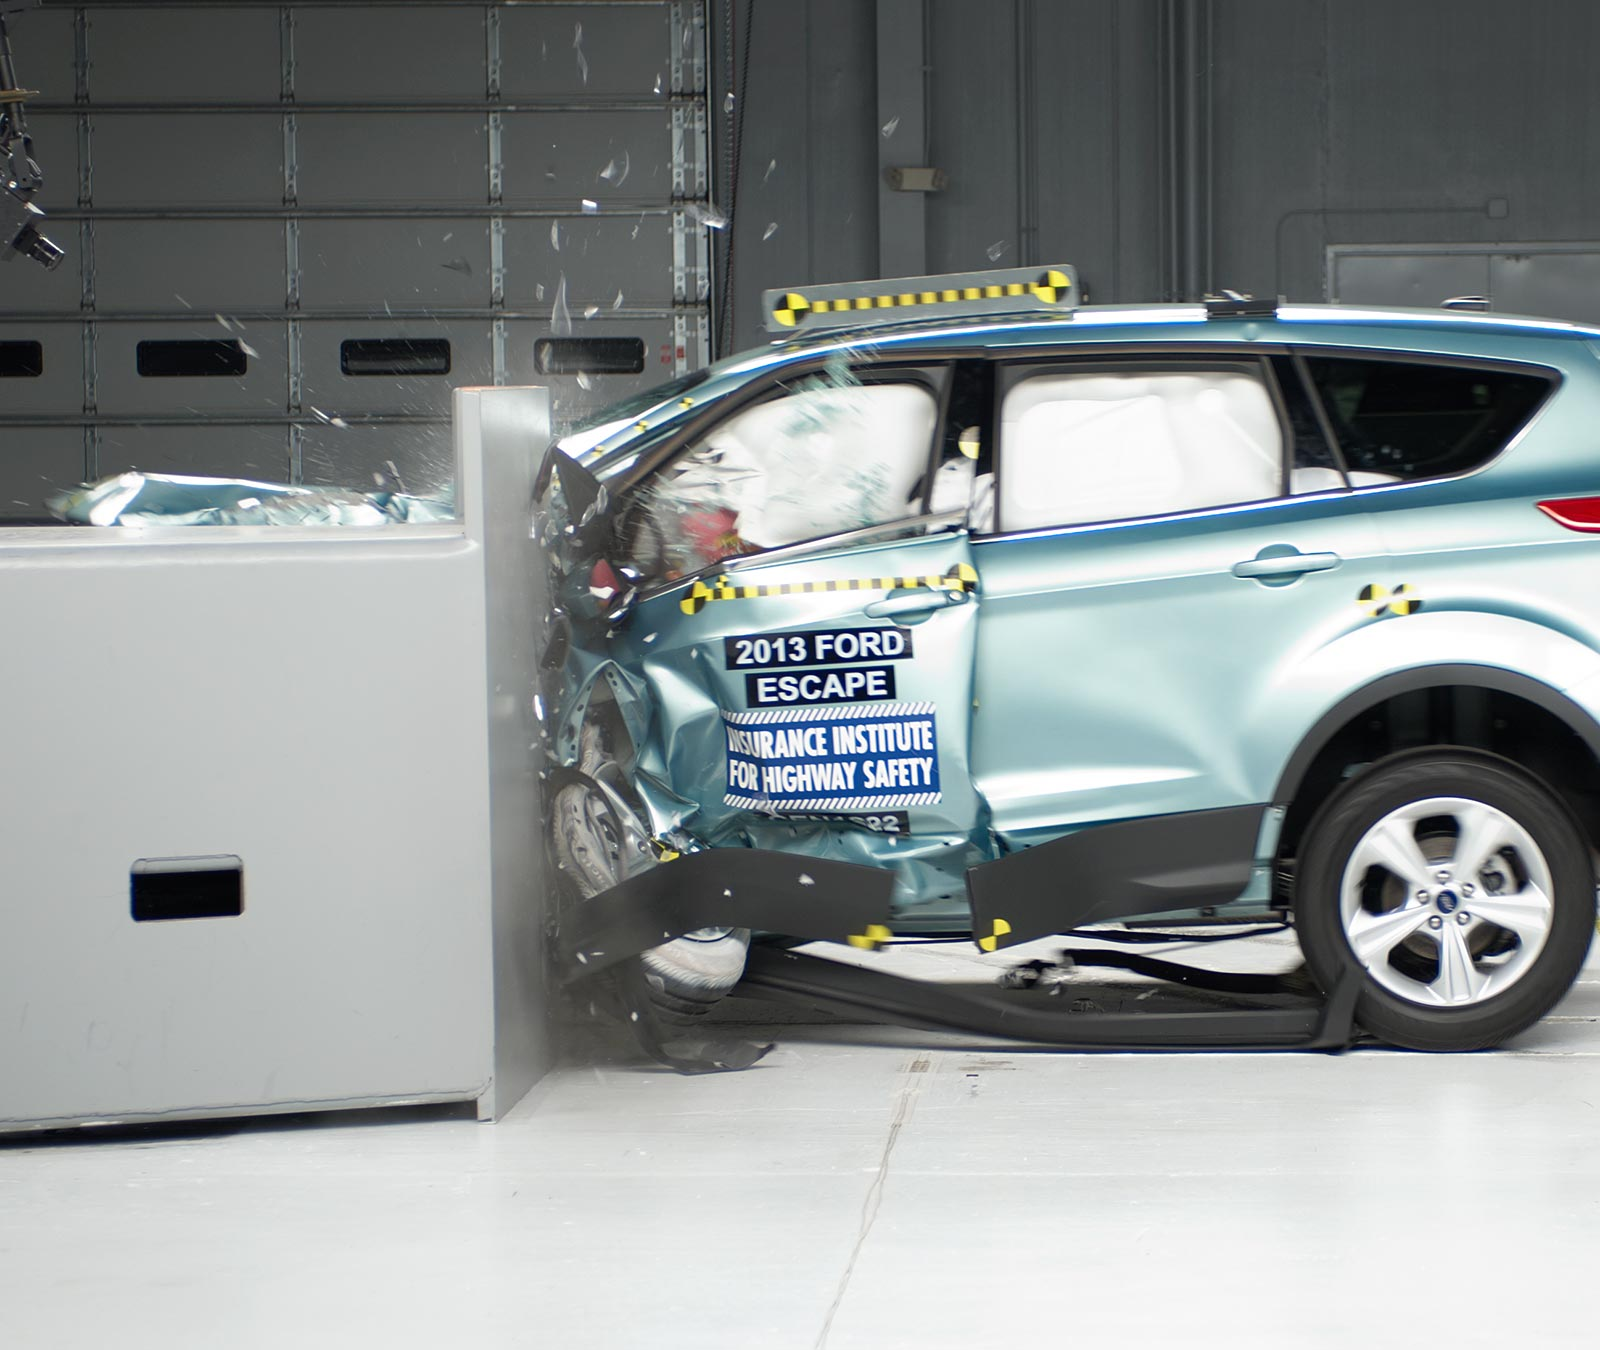 Action Shot Taken During The Small Overlap Frontal Crash Test